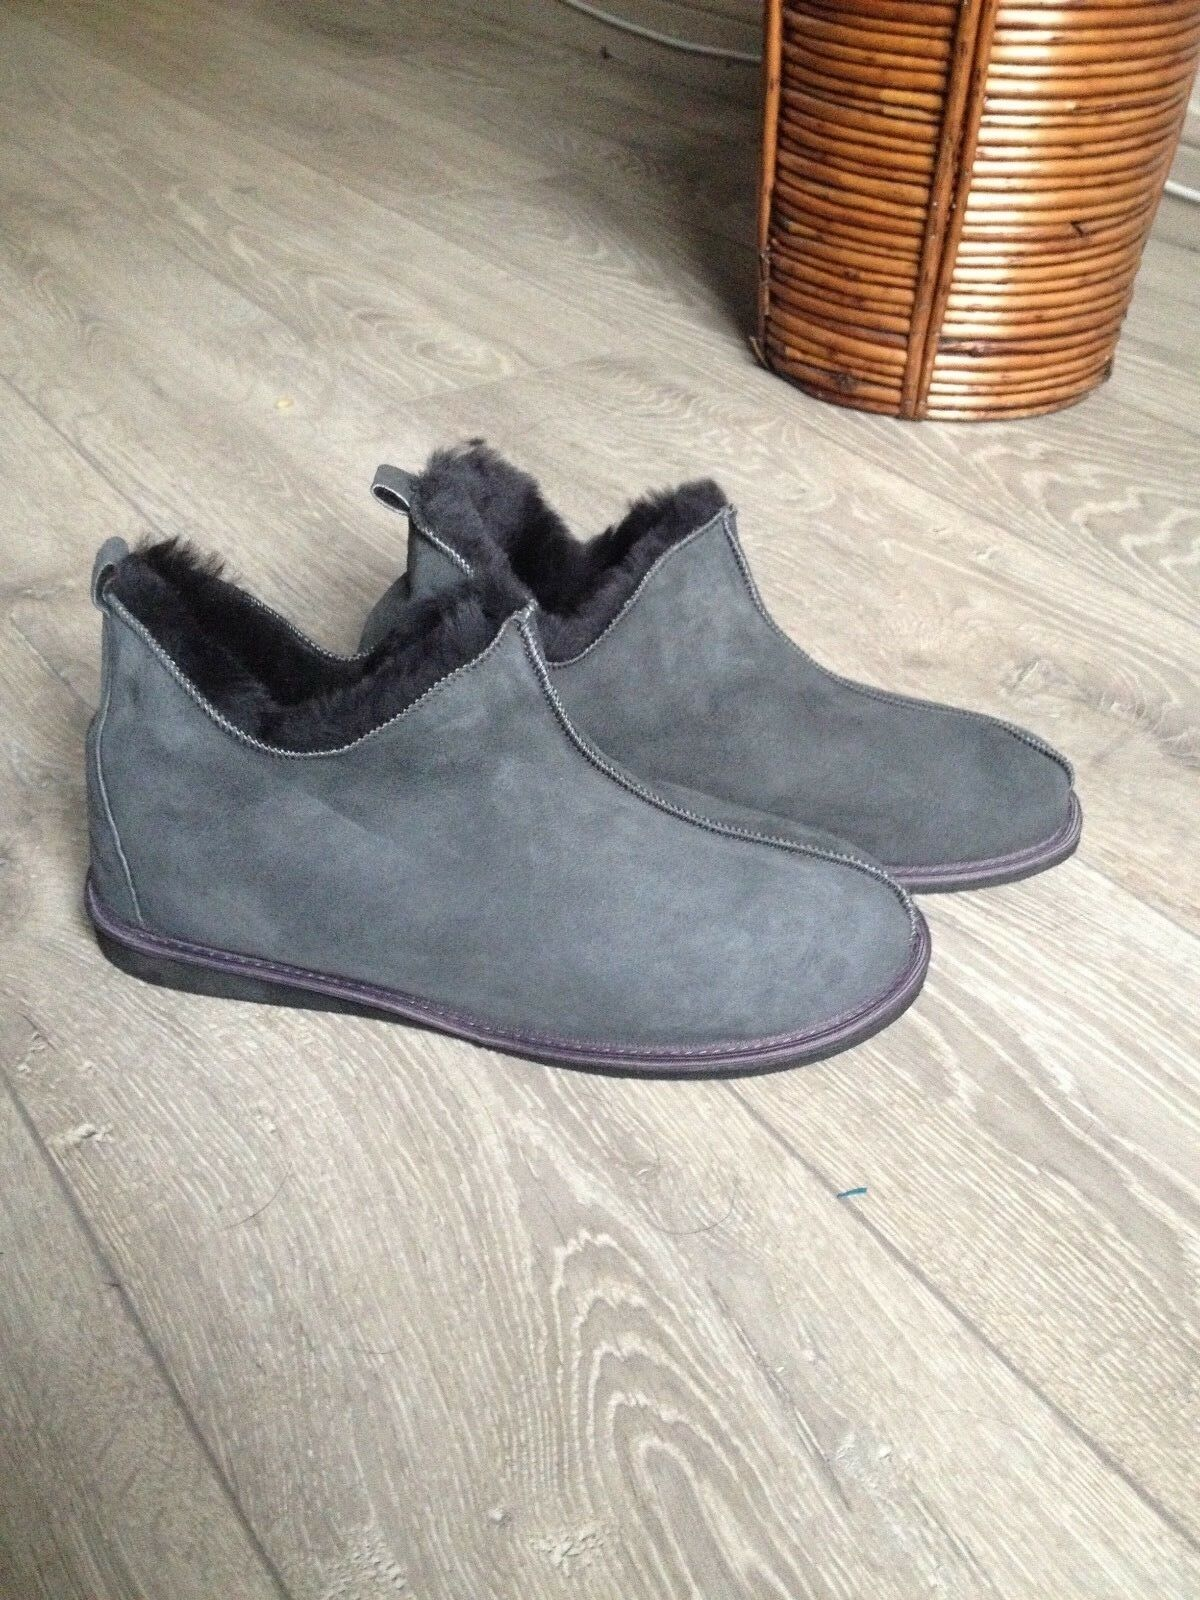 Luxury Men's Boots Slippers 100% natural Fur